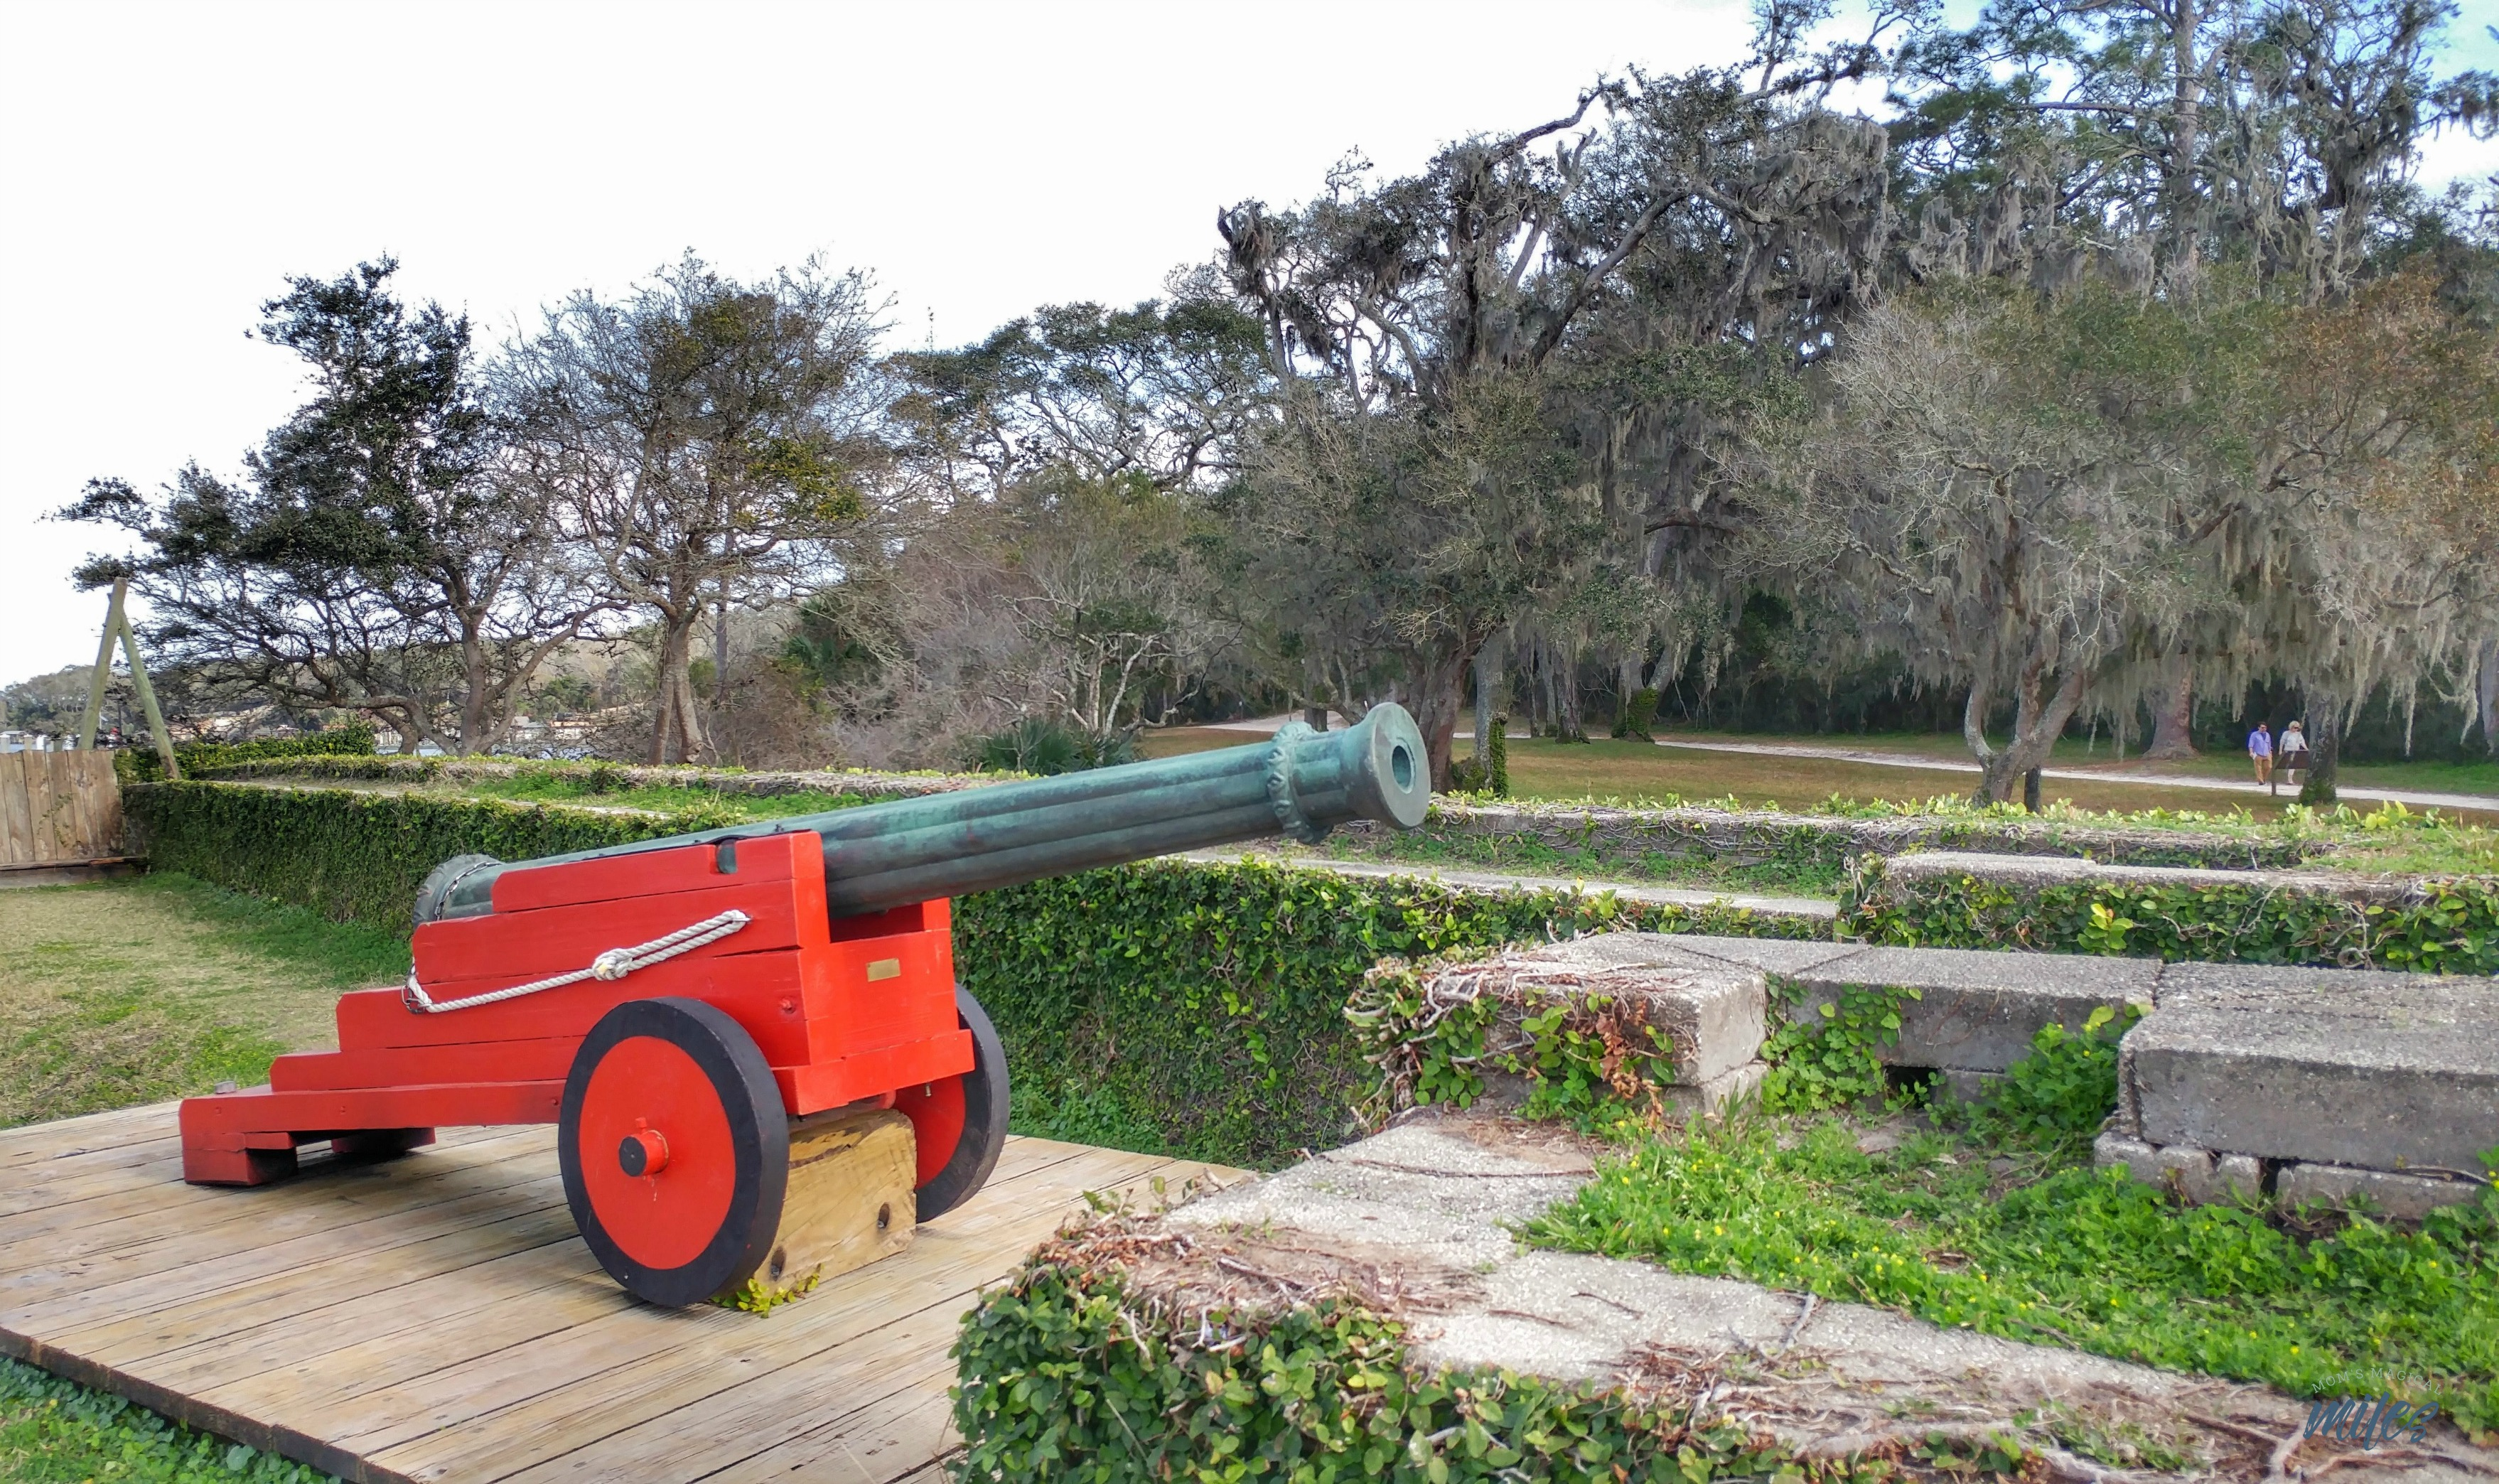 A replica of Fort Caroline is situated on the bank of the St. Johns River in Jacksonville, Florida.